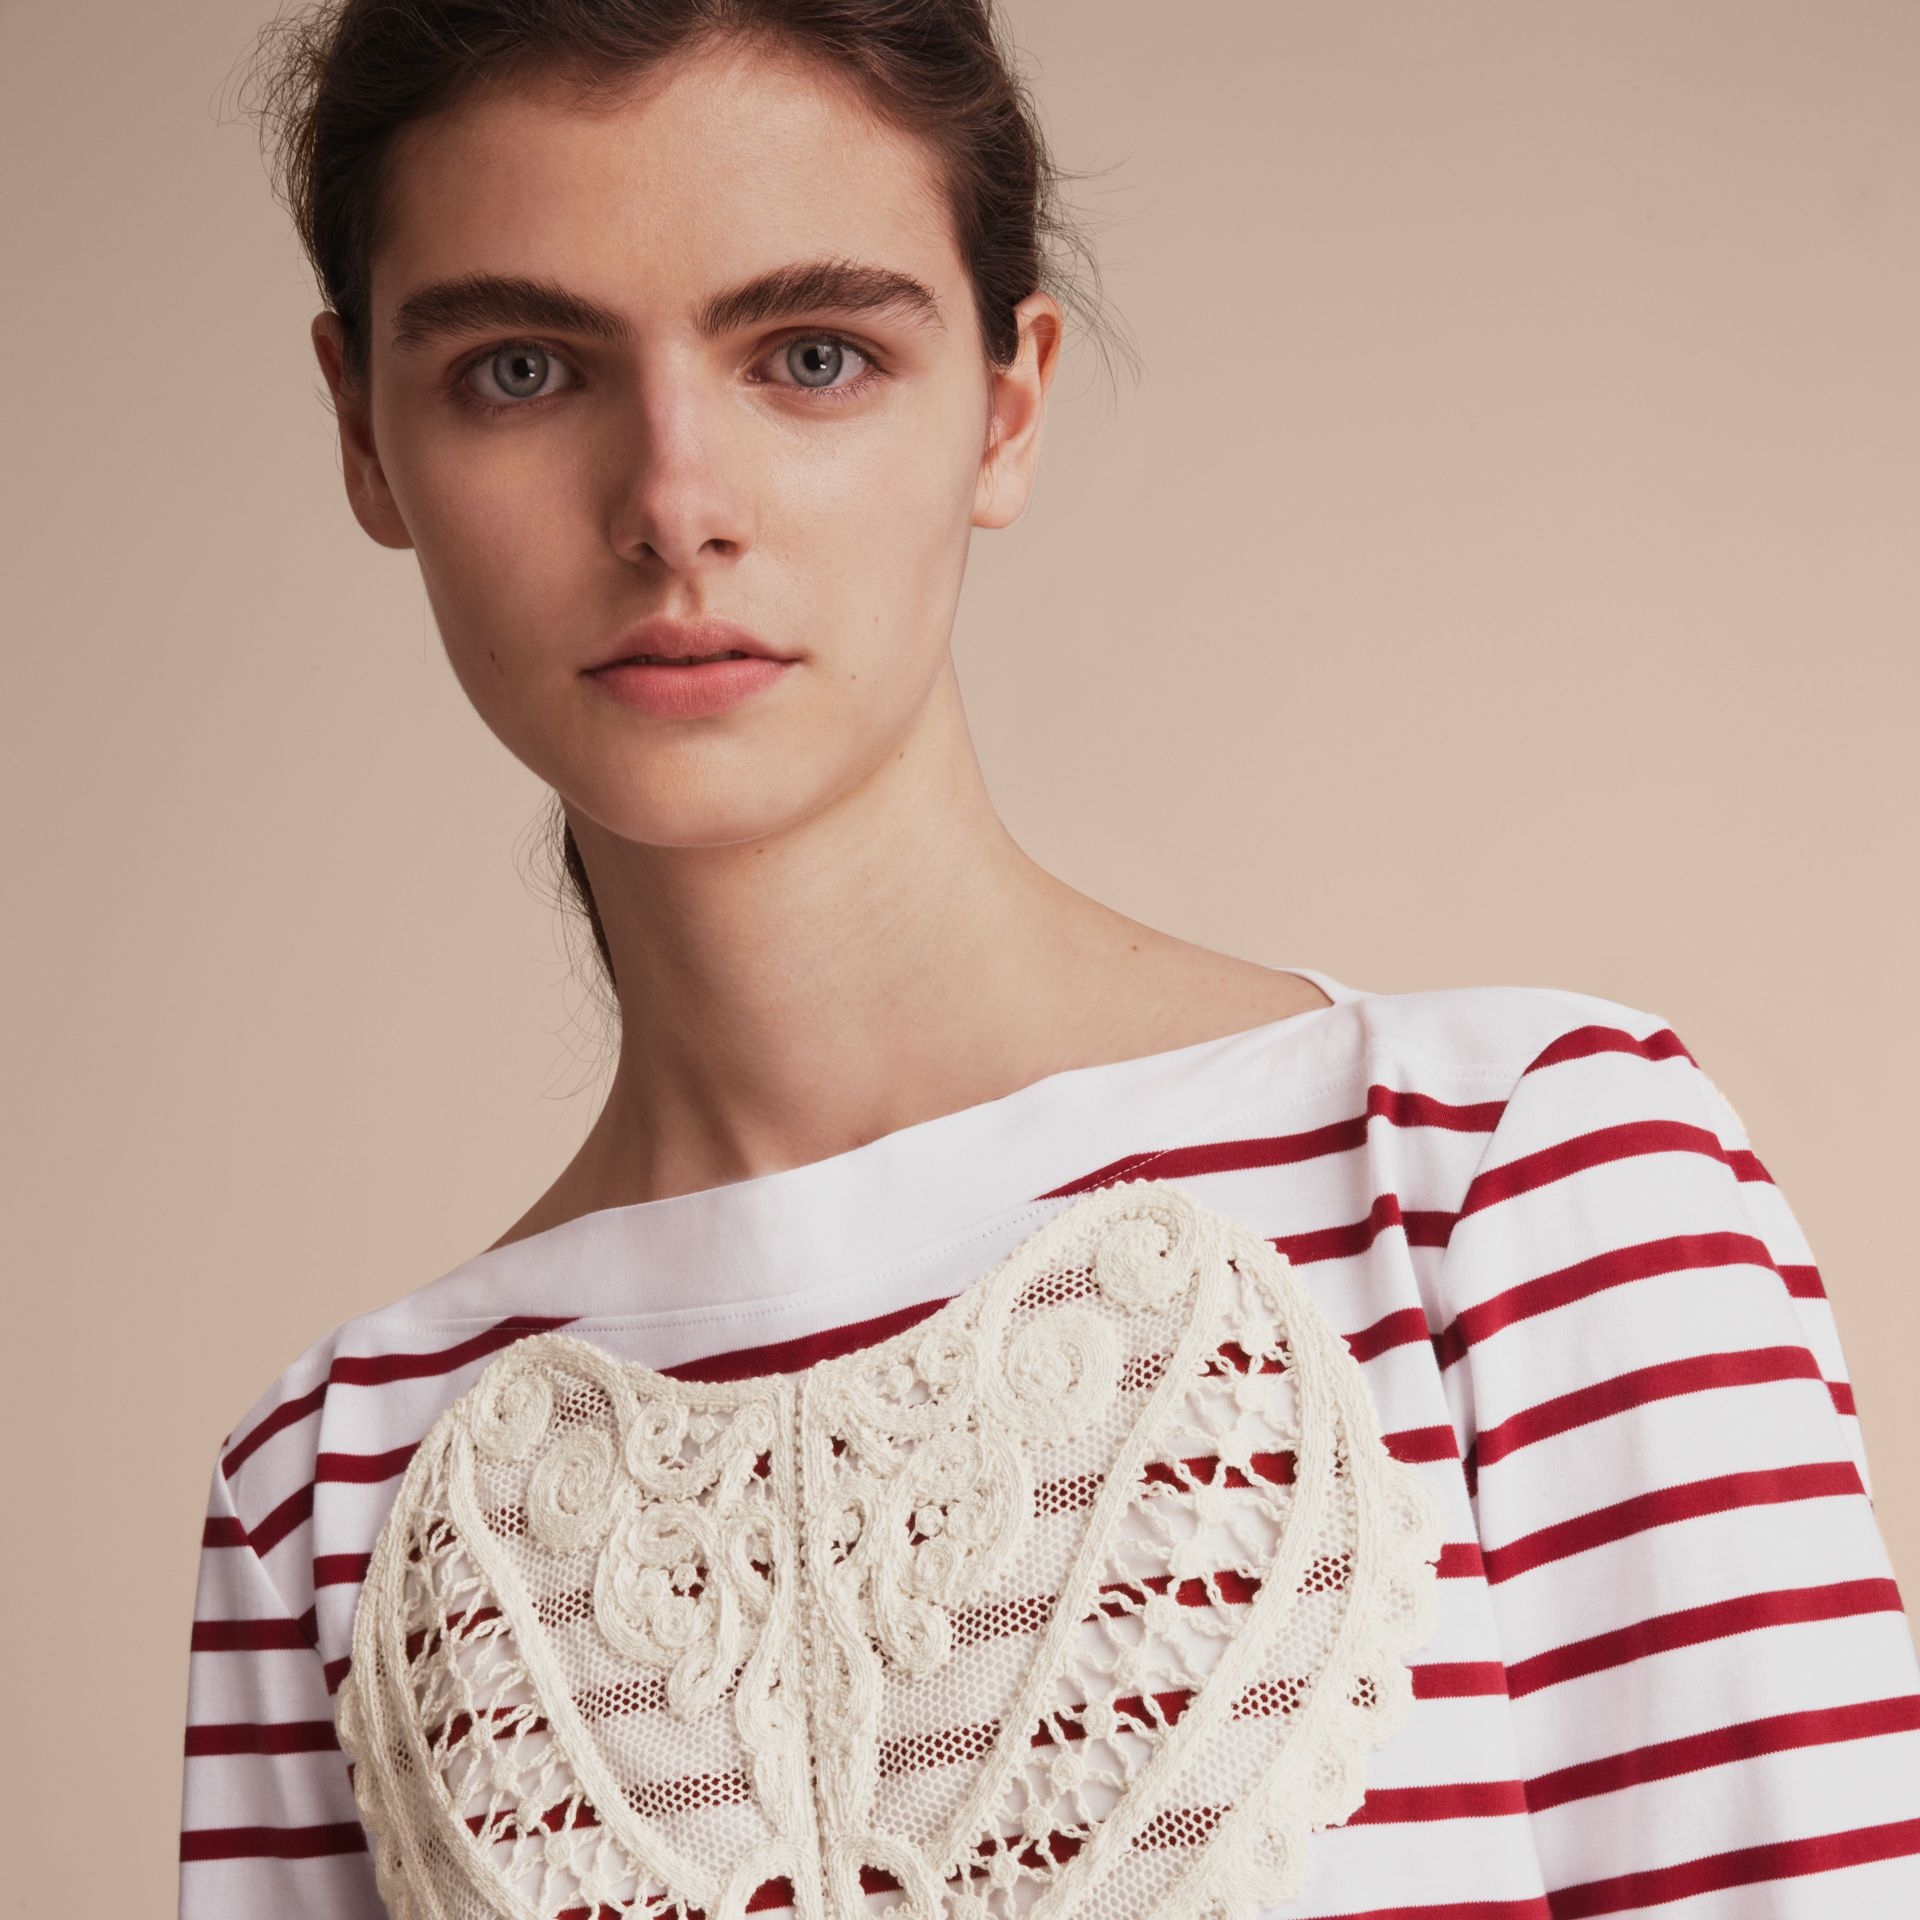 Unisex Breton Stripe Cotton Top with Lace Appliqué in Parade Red - Women | Burberry - gallery image 6